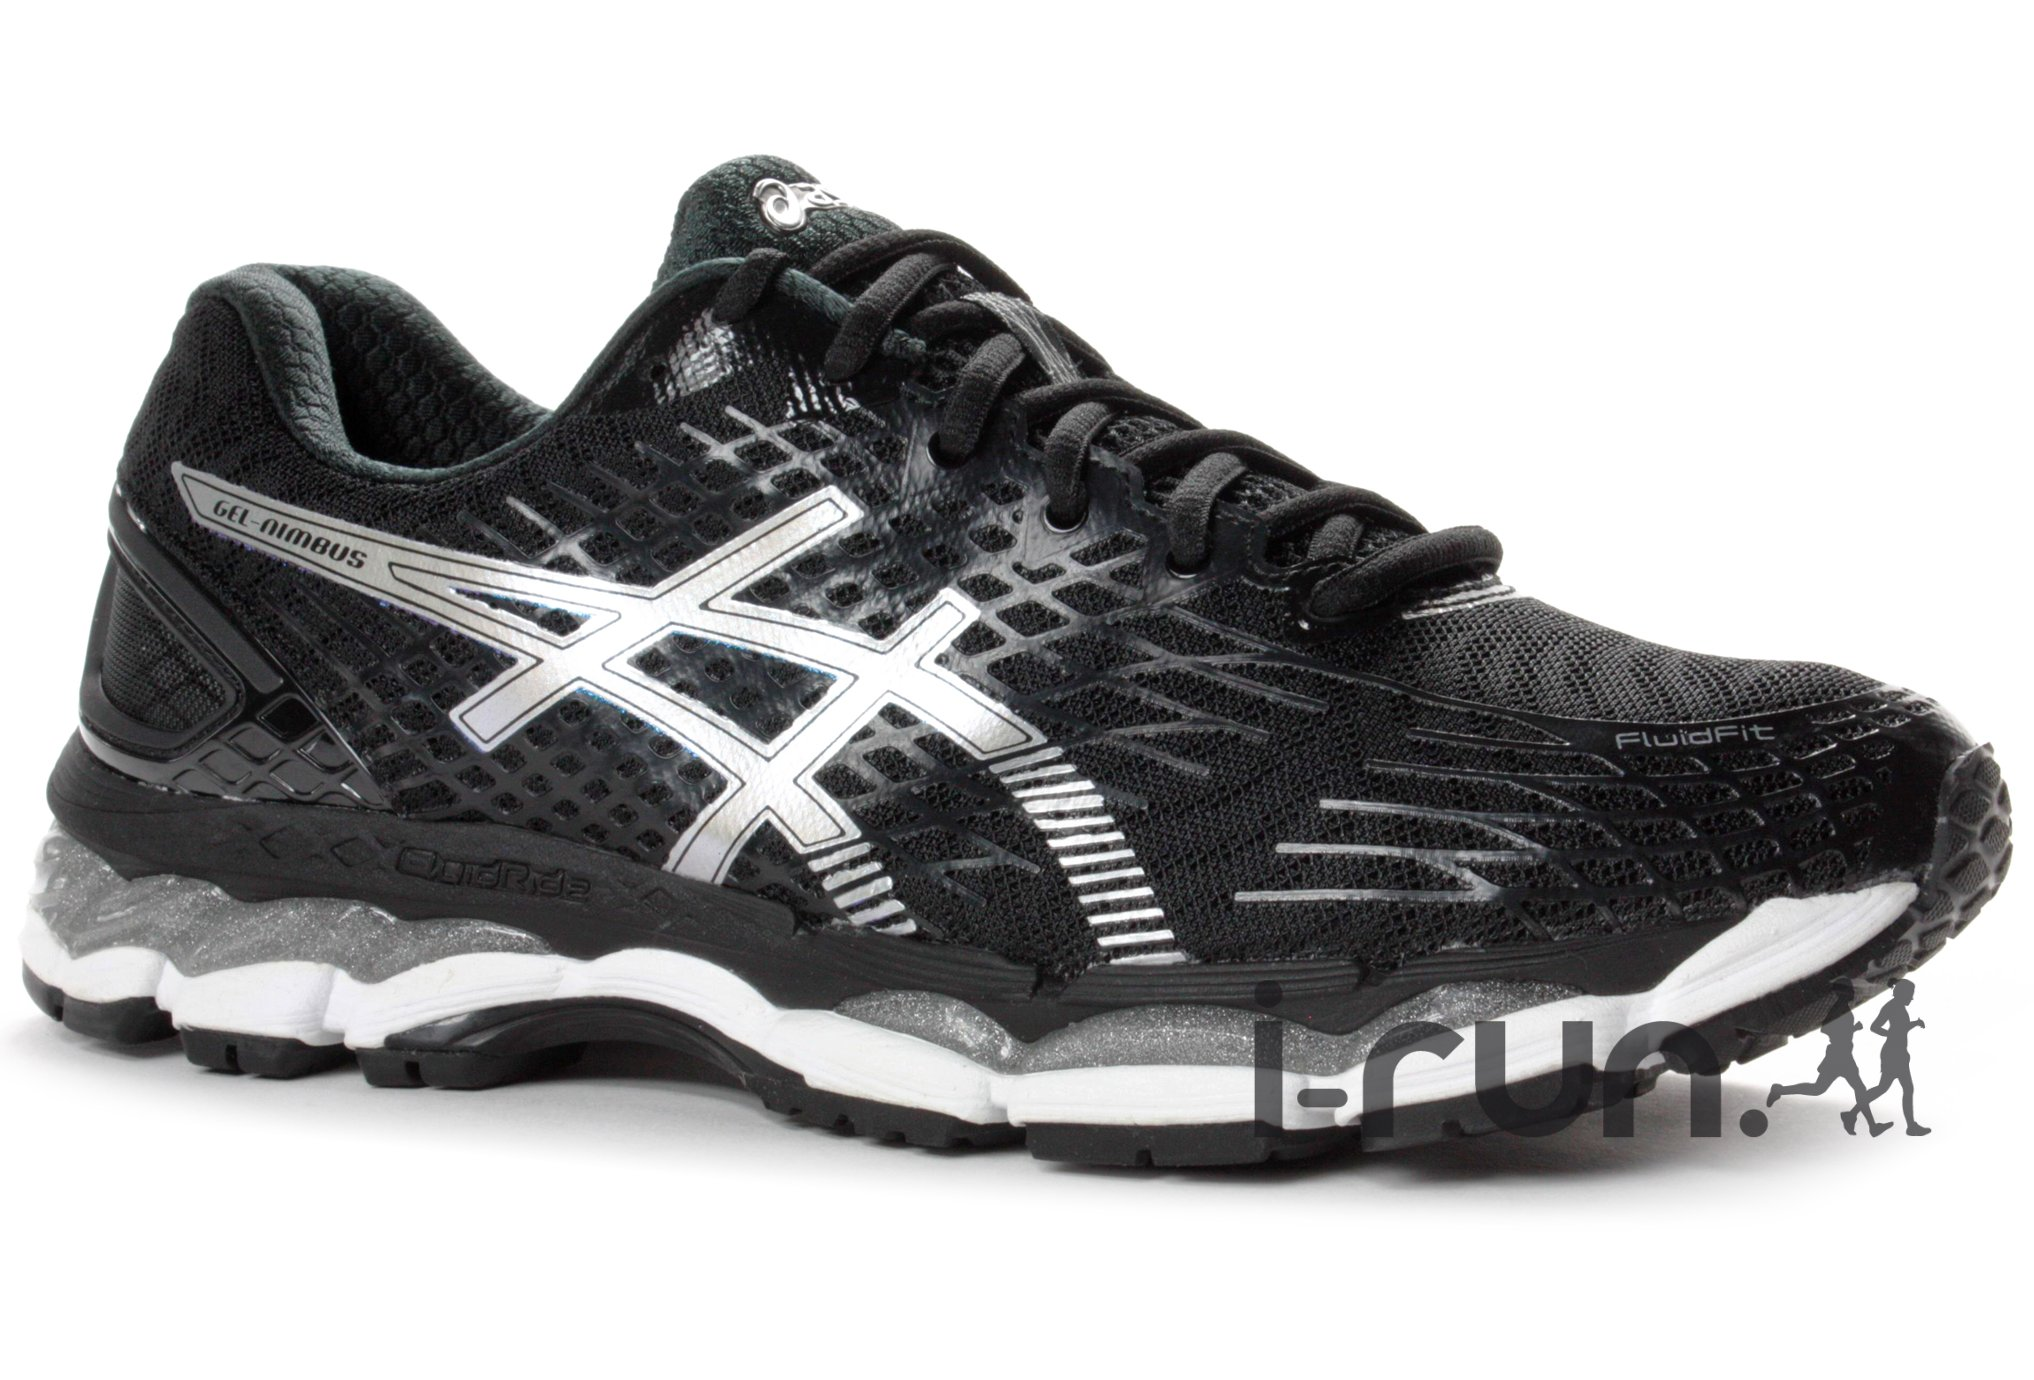 asics gel nimbus 17 m pas cher avis prix et test. Black Bedroom Furniture Sets. Home Design Ideas